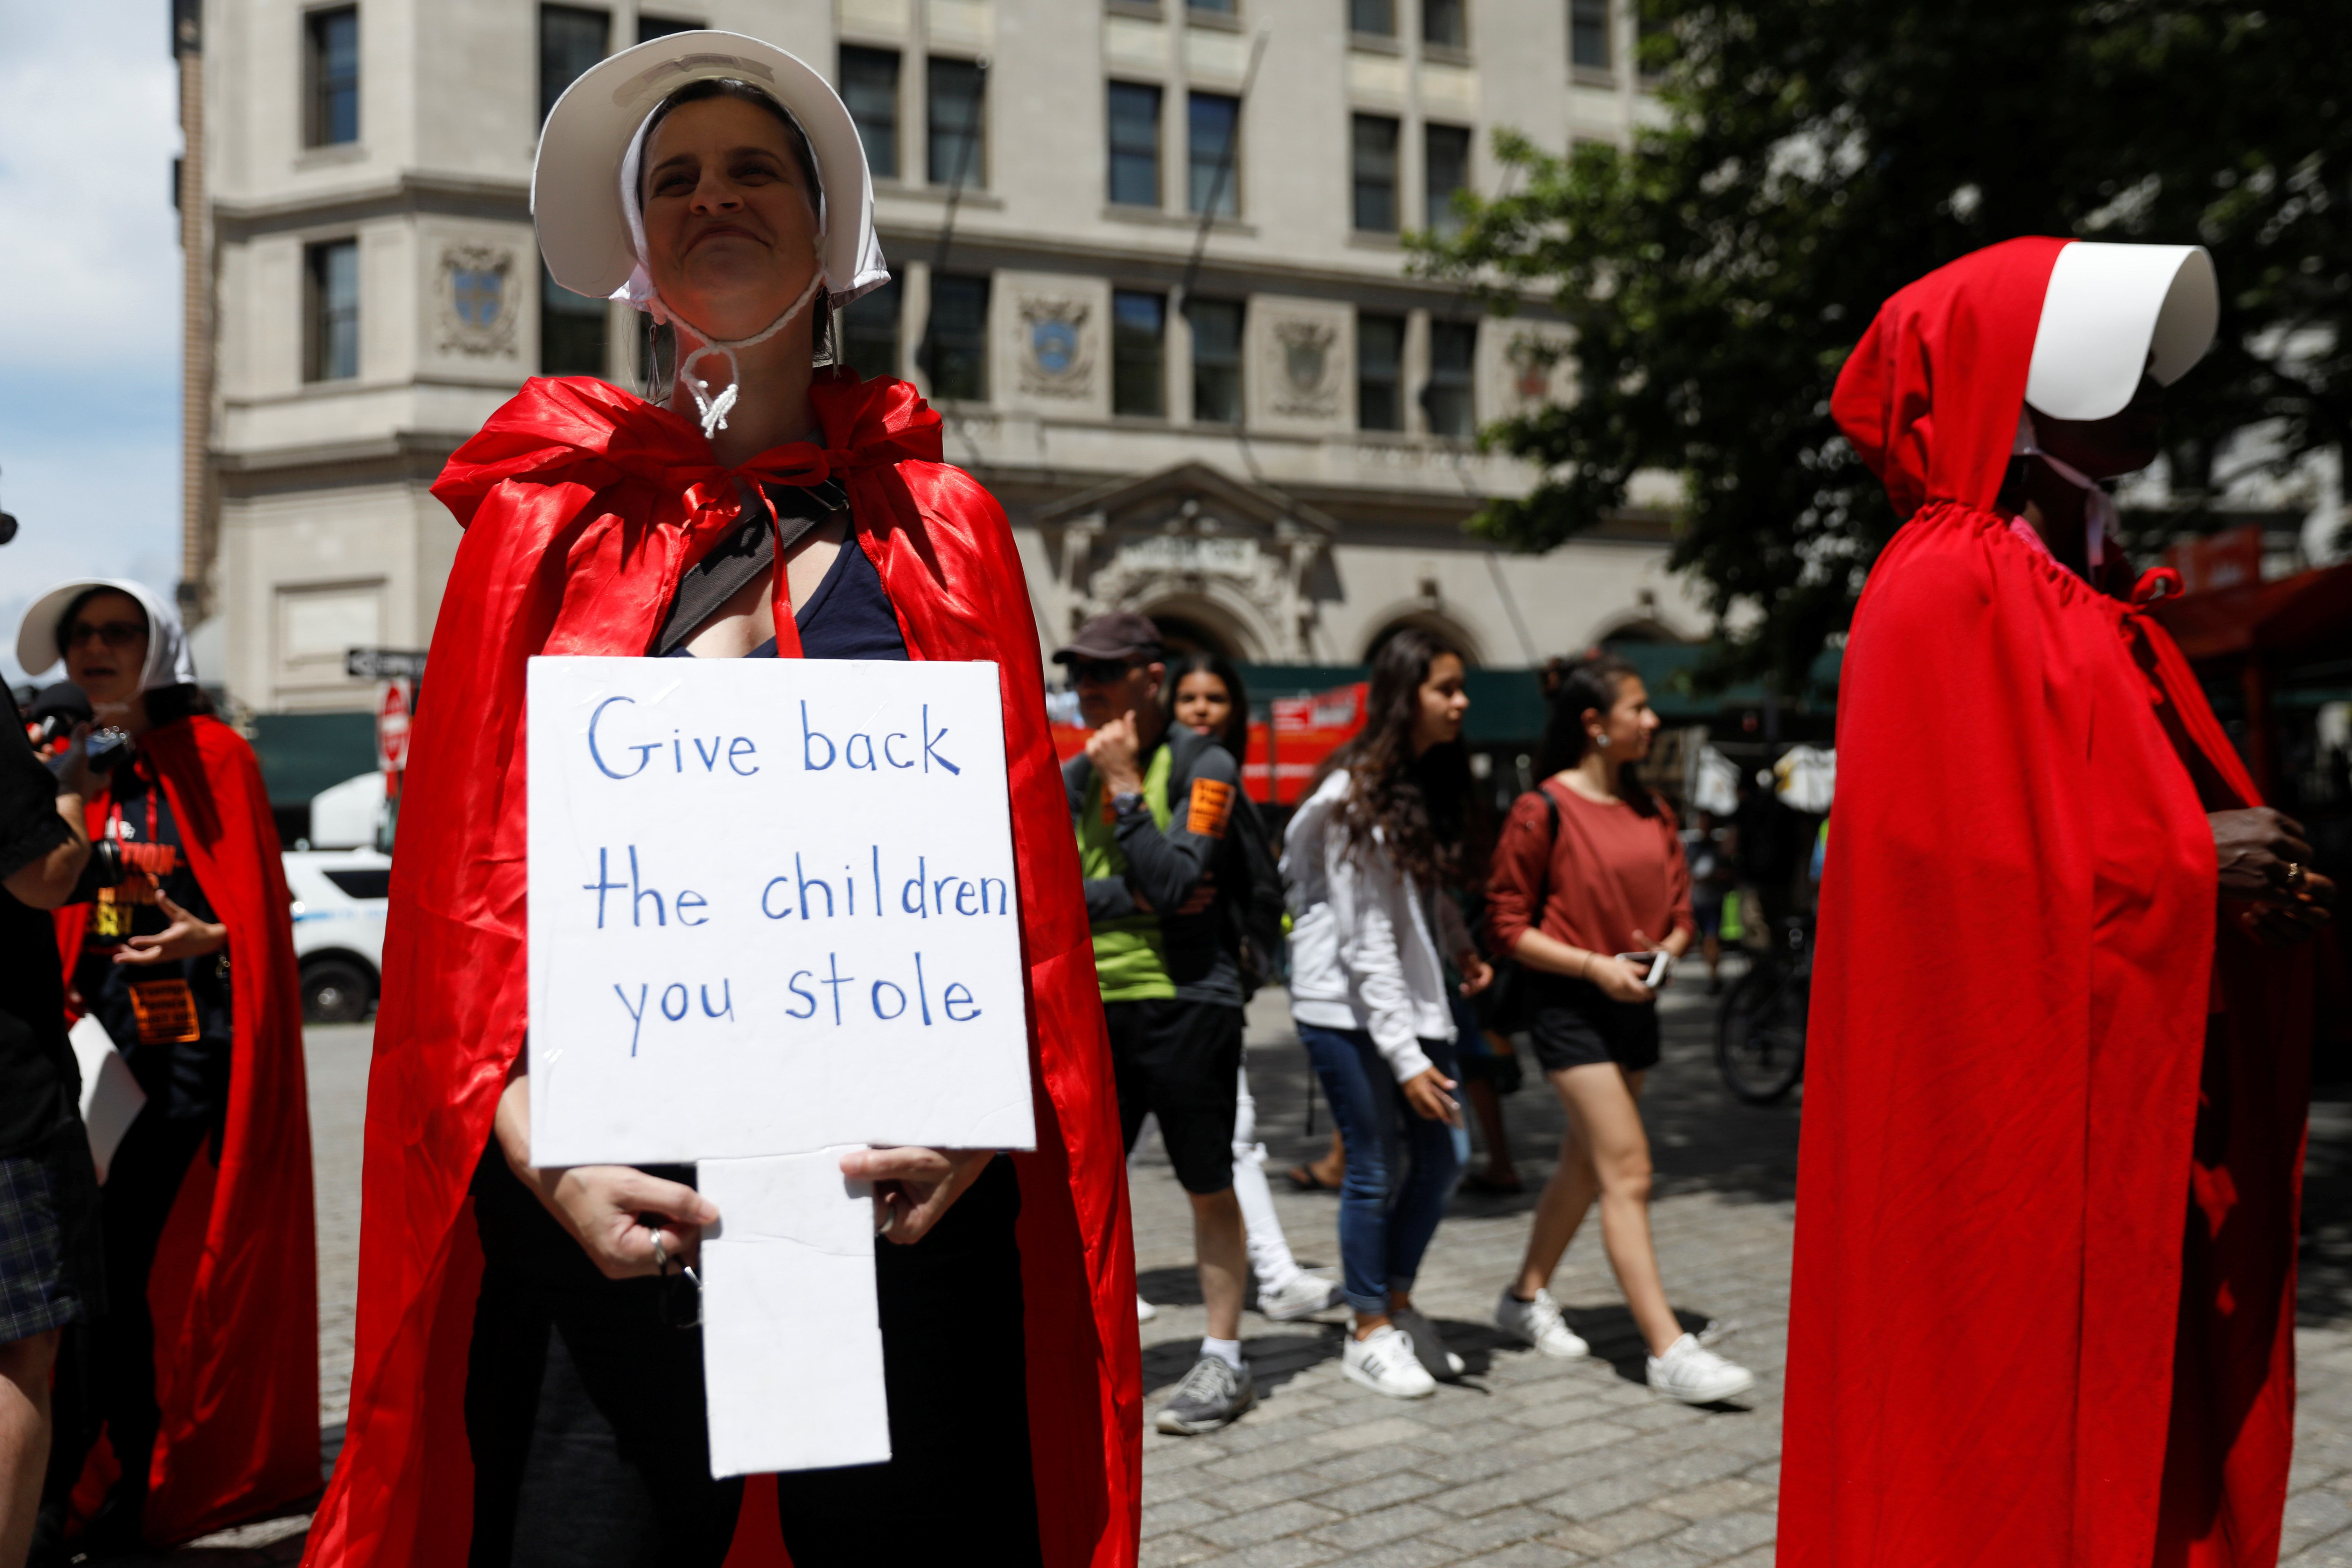 """Women dressed in red gowns as worn in the """"Handmaids Tale"""" protest U.S. Vice President Mike Pence and Department of Homeland Security (DHS) Secretary Kirstjen Nielsen outside the DHS Cybersecurity Summit in Manhattan, New York, U.S., July 31, 2018.  REUTERS/Shannon Stapleton"""